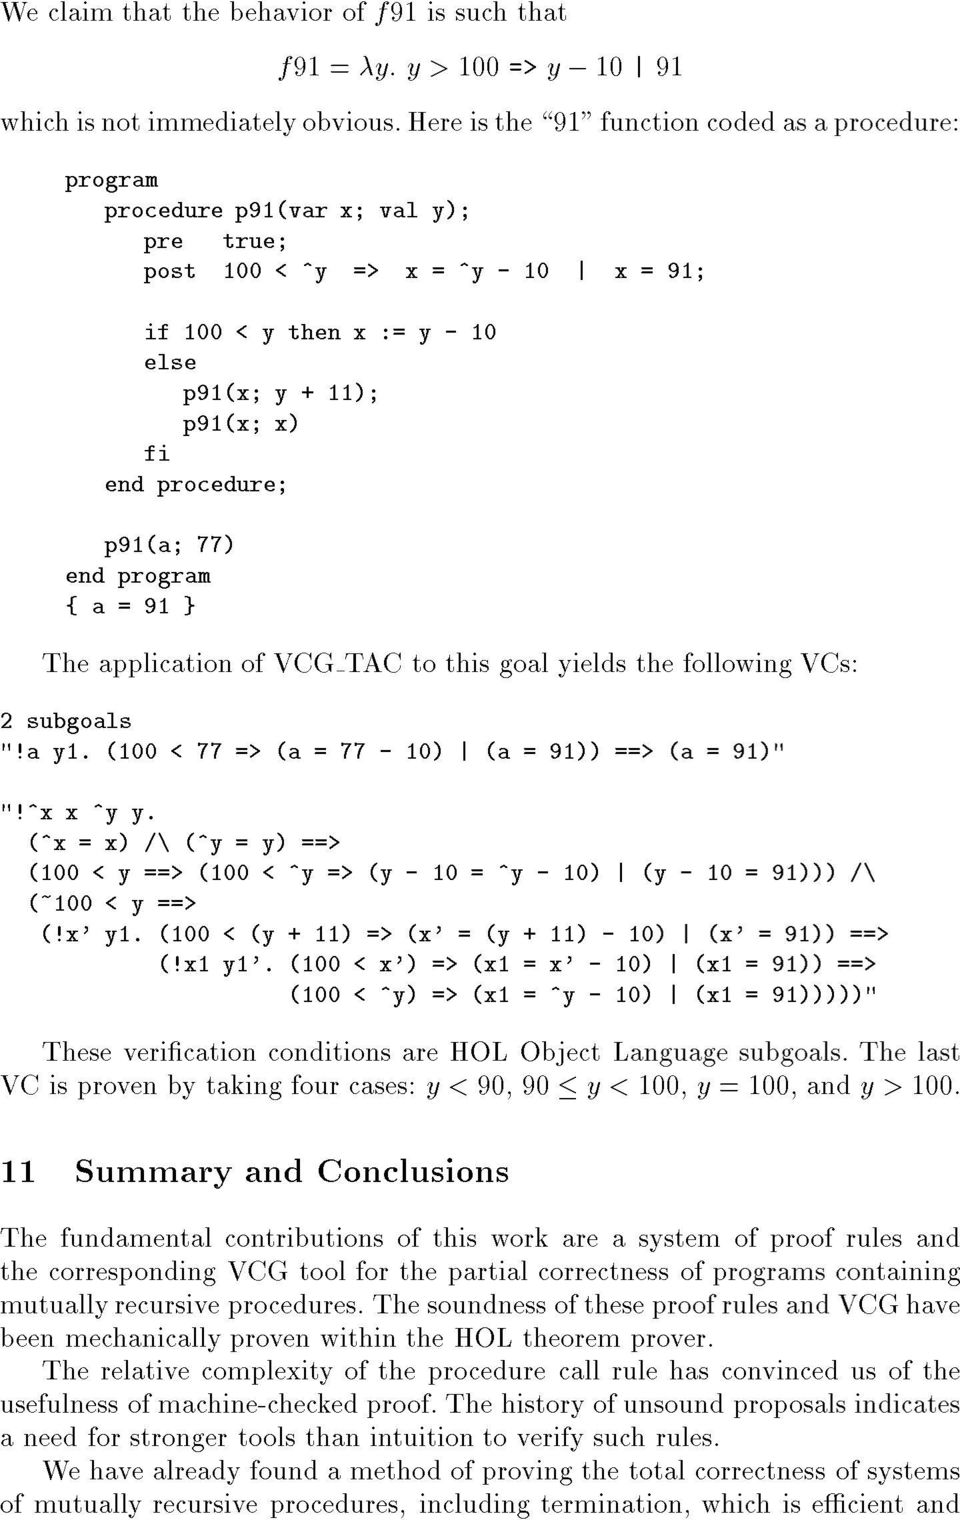 "Here is the \91"" function coded as a procedure: The application of VCG TAC to this goal yields the following VCs: 2 subgoals ""!a y1. (1 < 77 => (a = 77-1) (a = 91)) ==> (a = 91)"" ""!^x x ^y y."